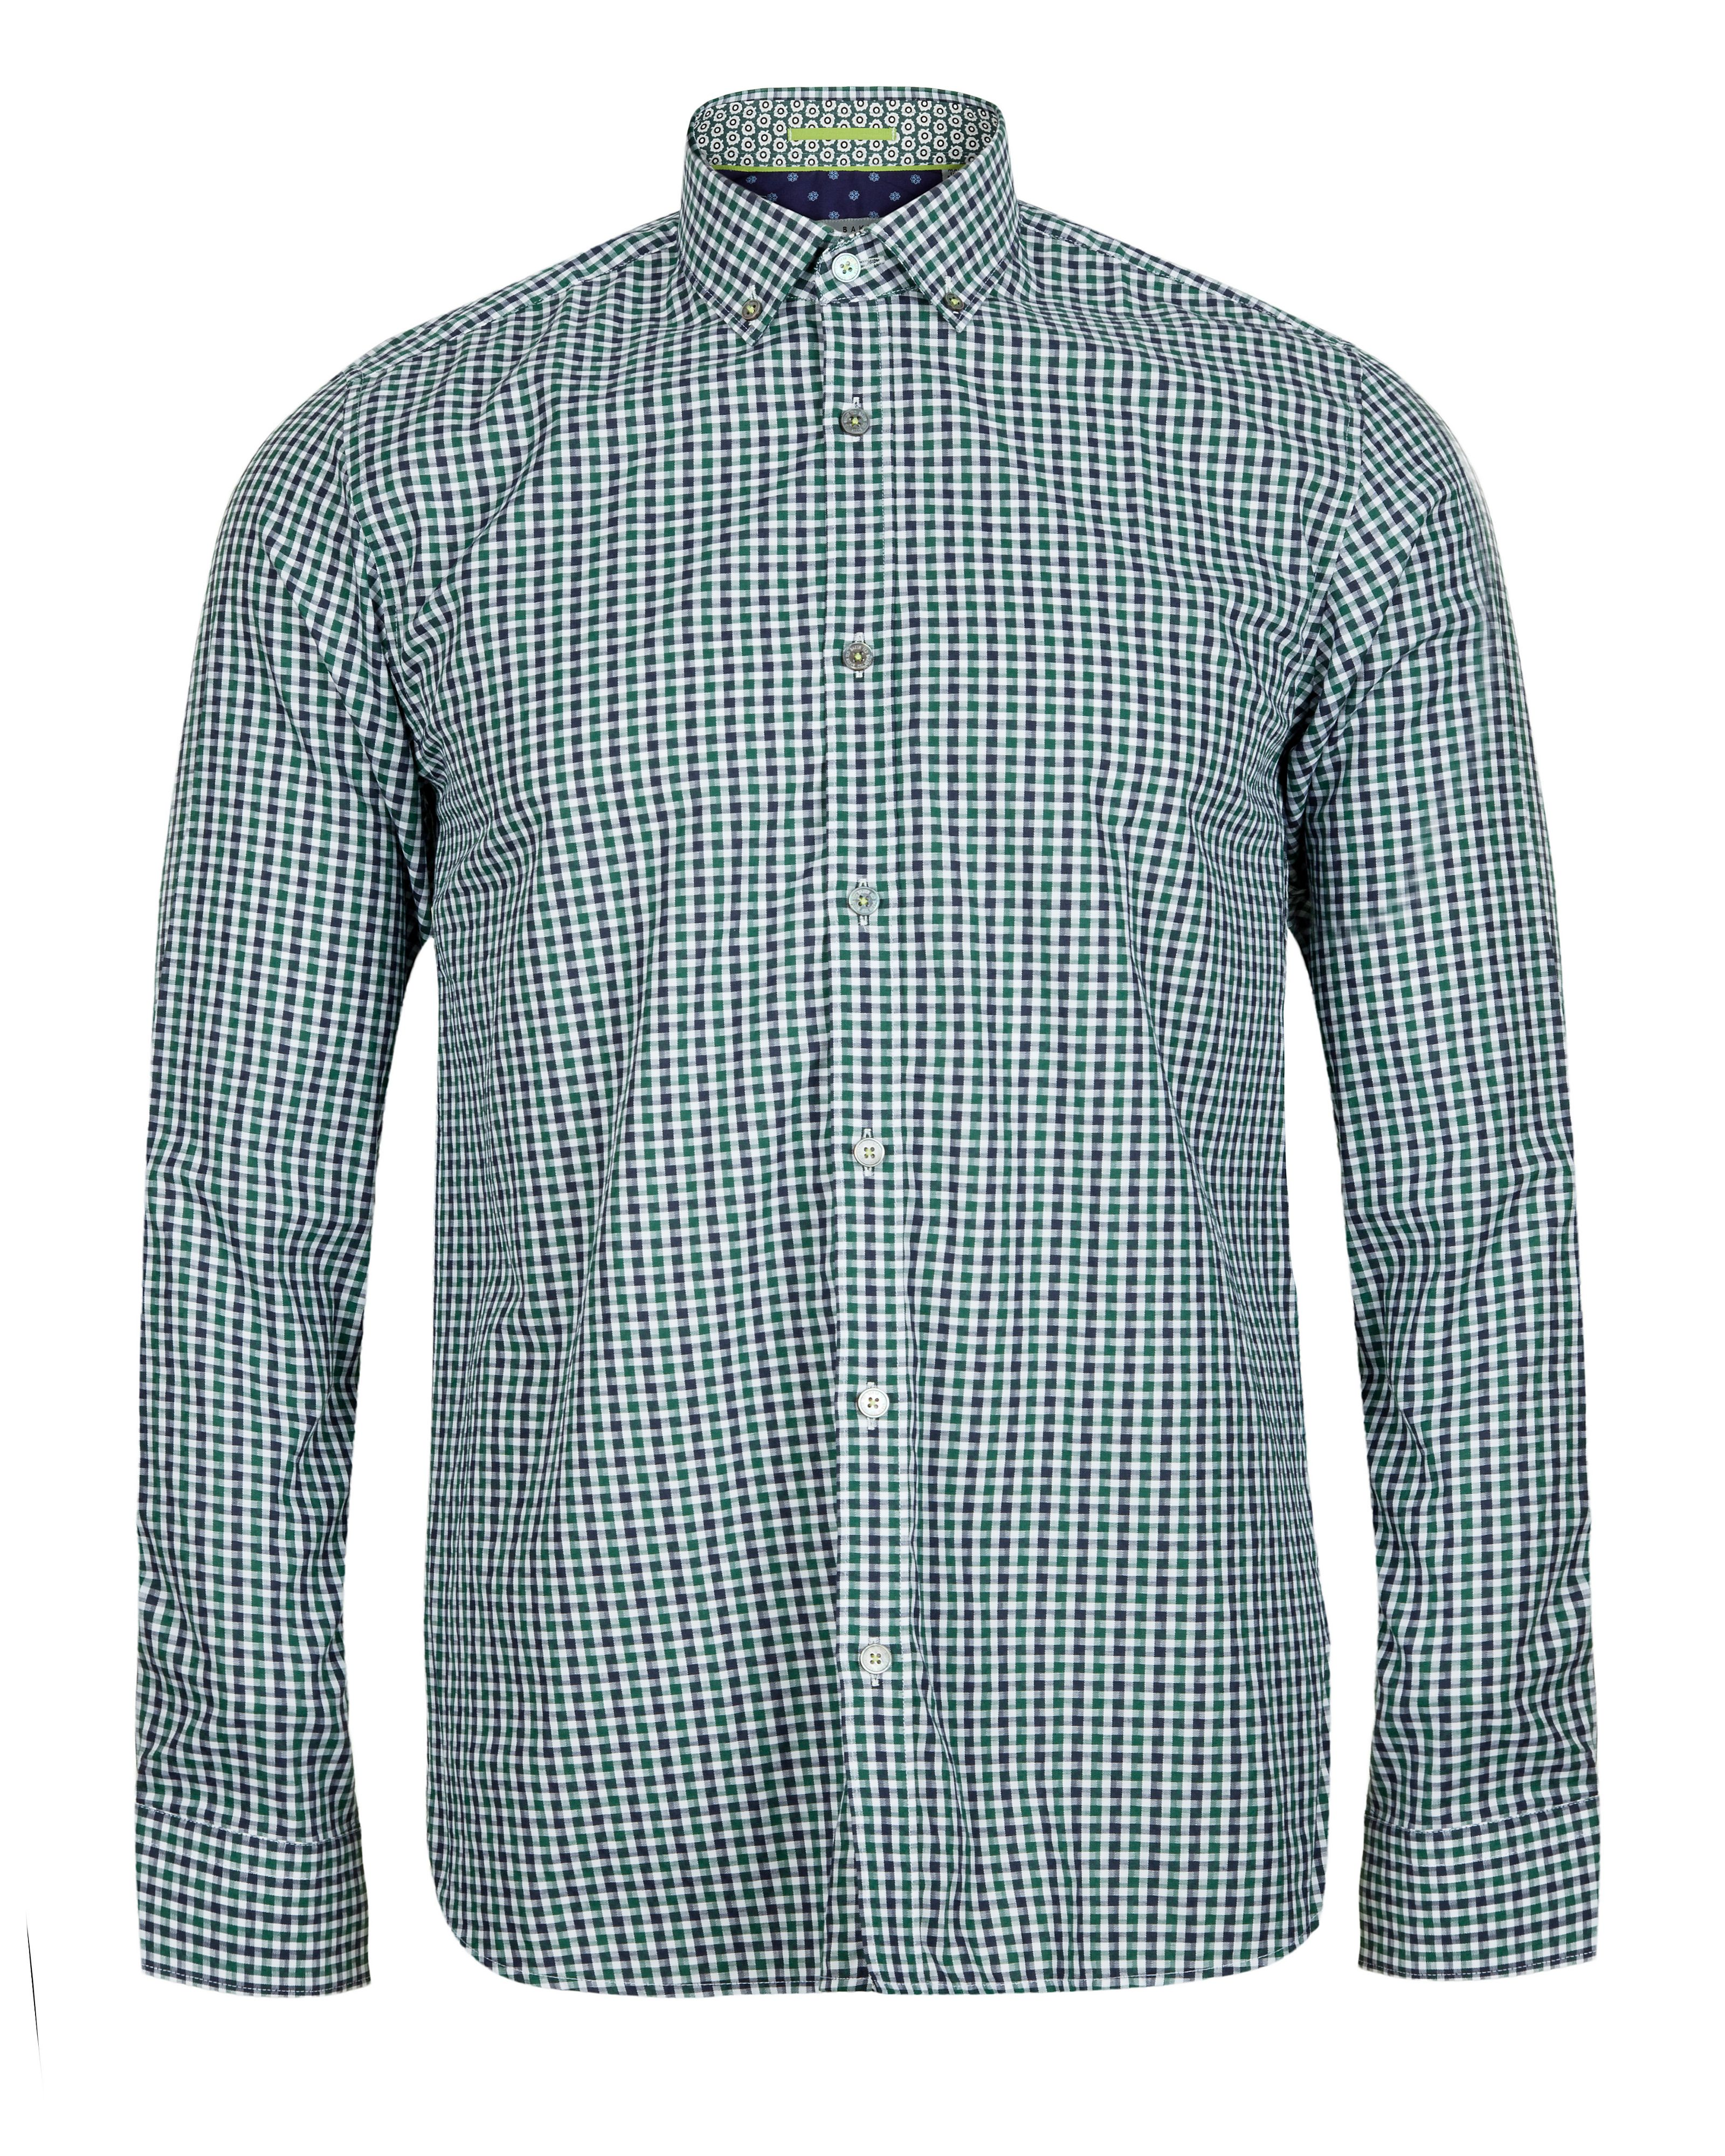 Dannoo twill check shirt